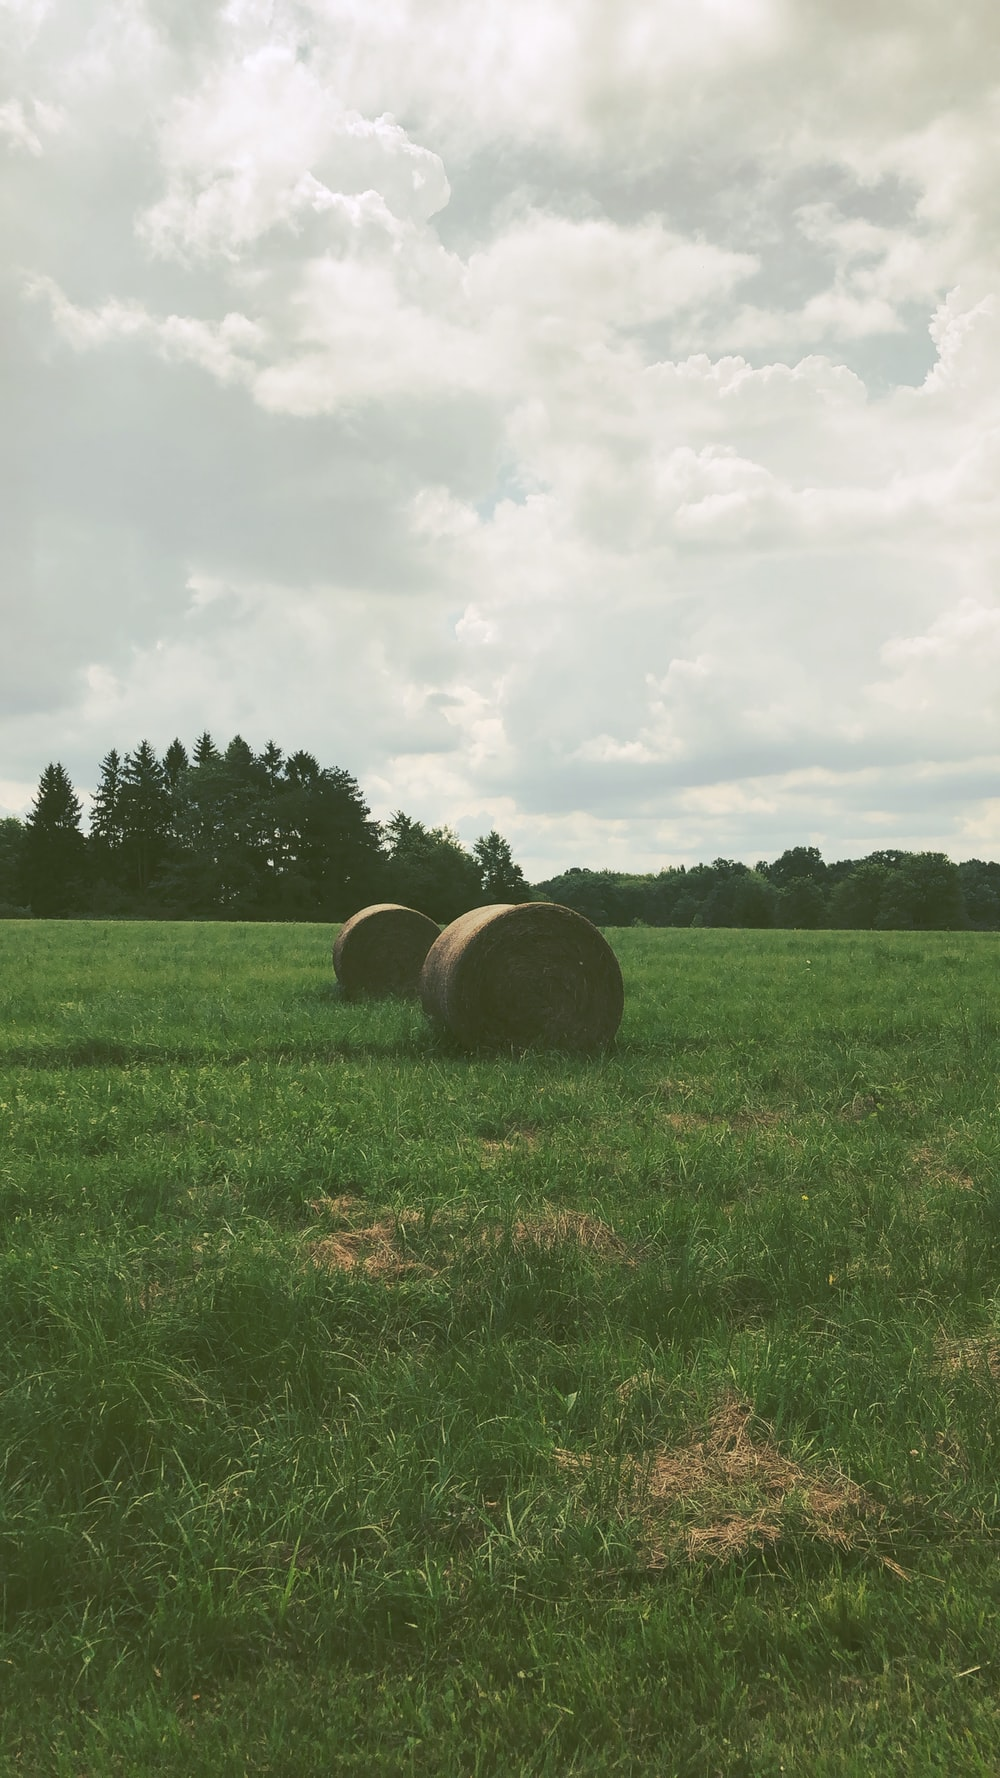 hay rolls on grass during day